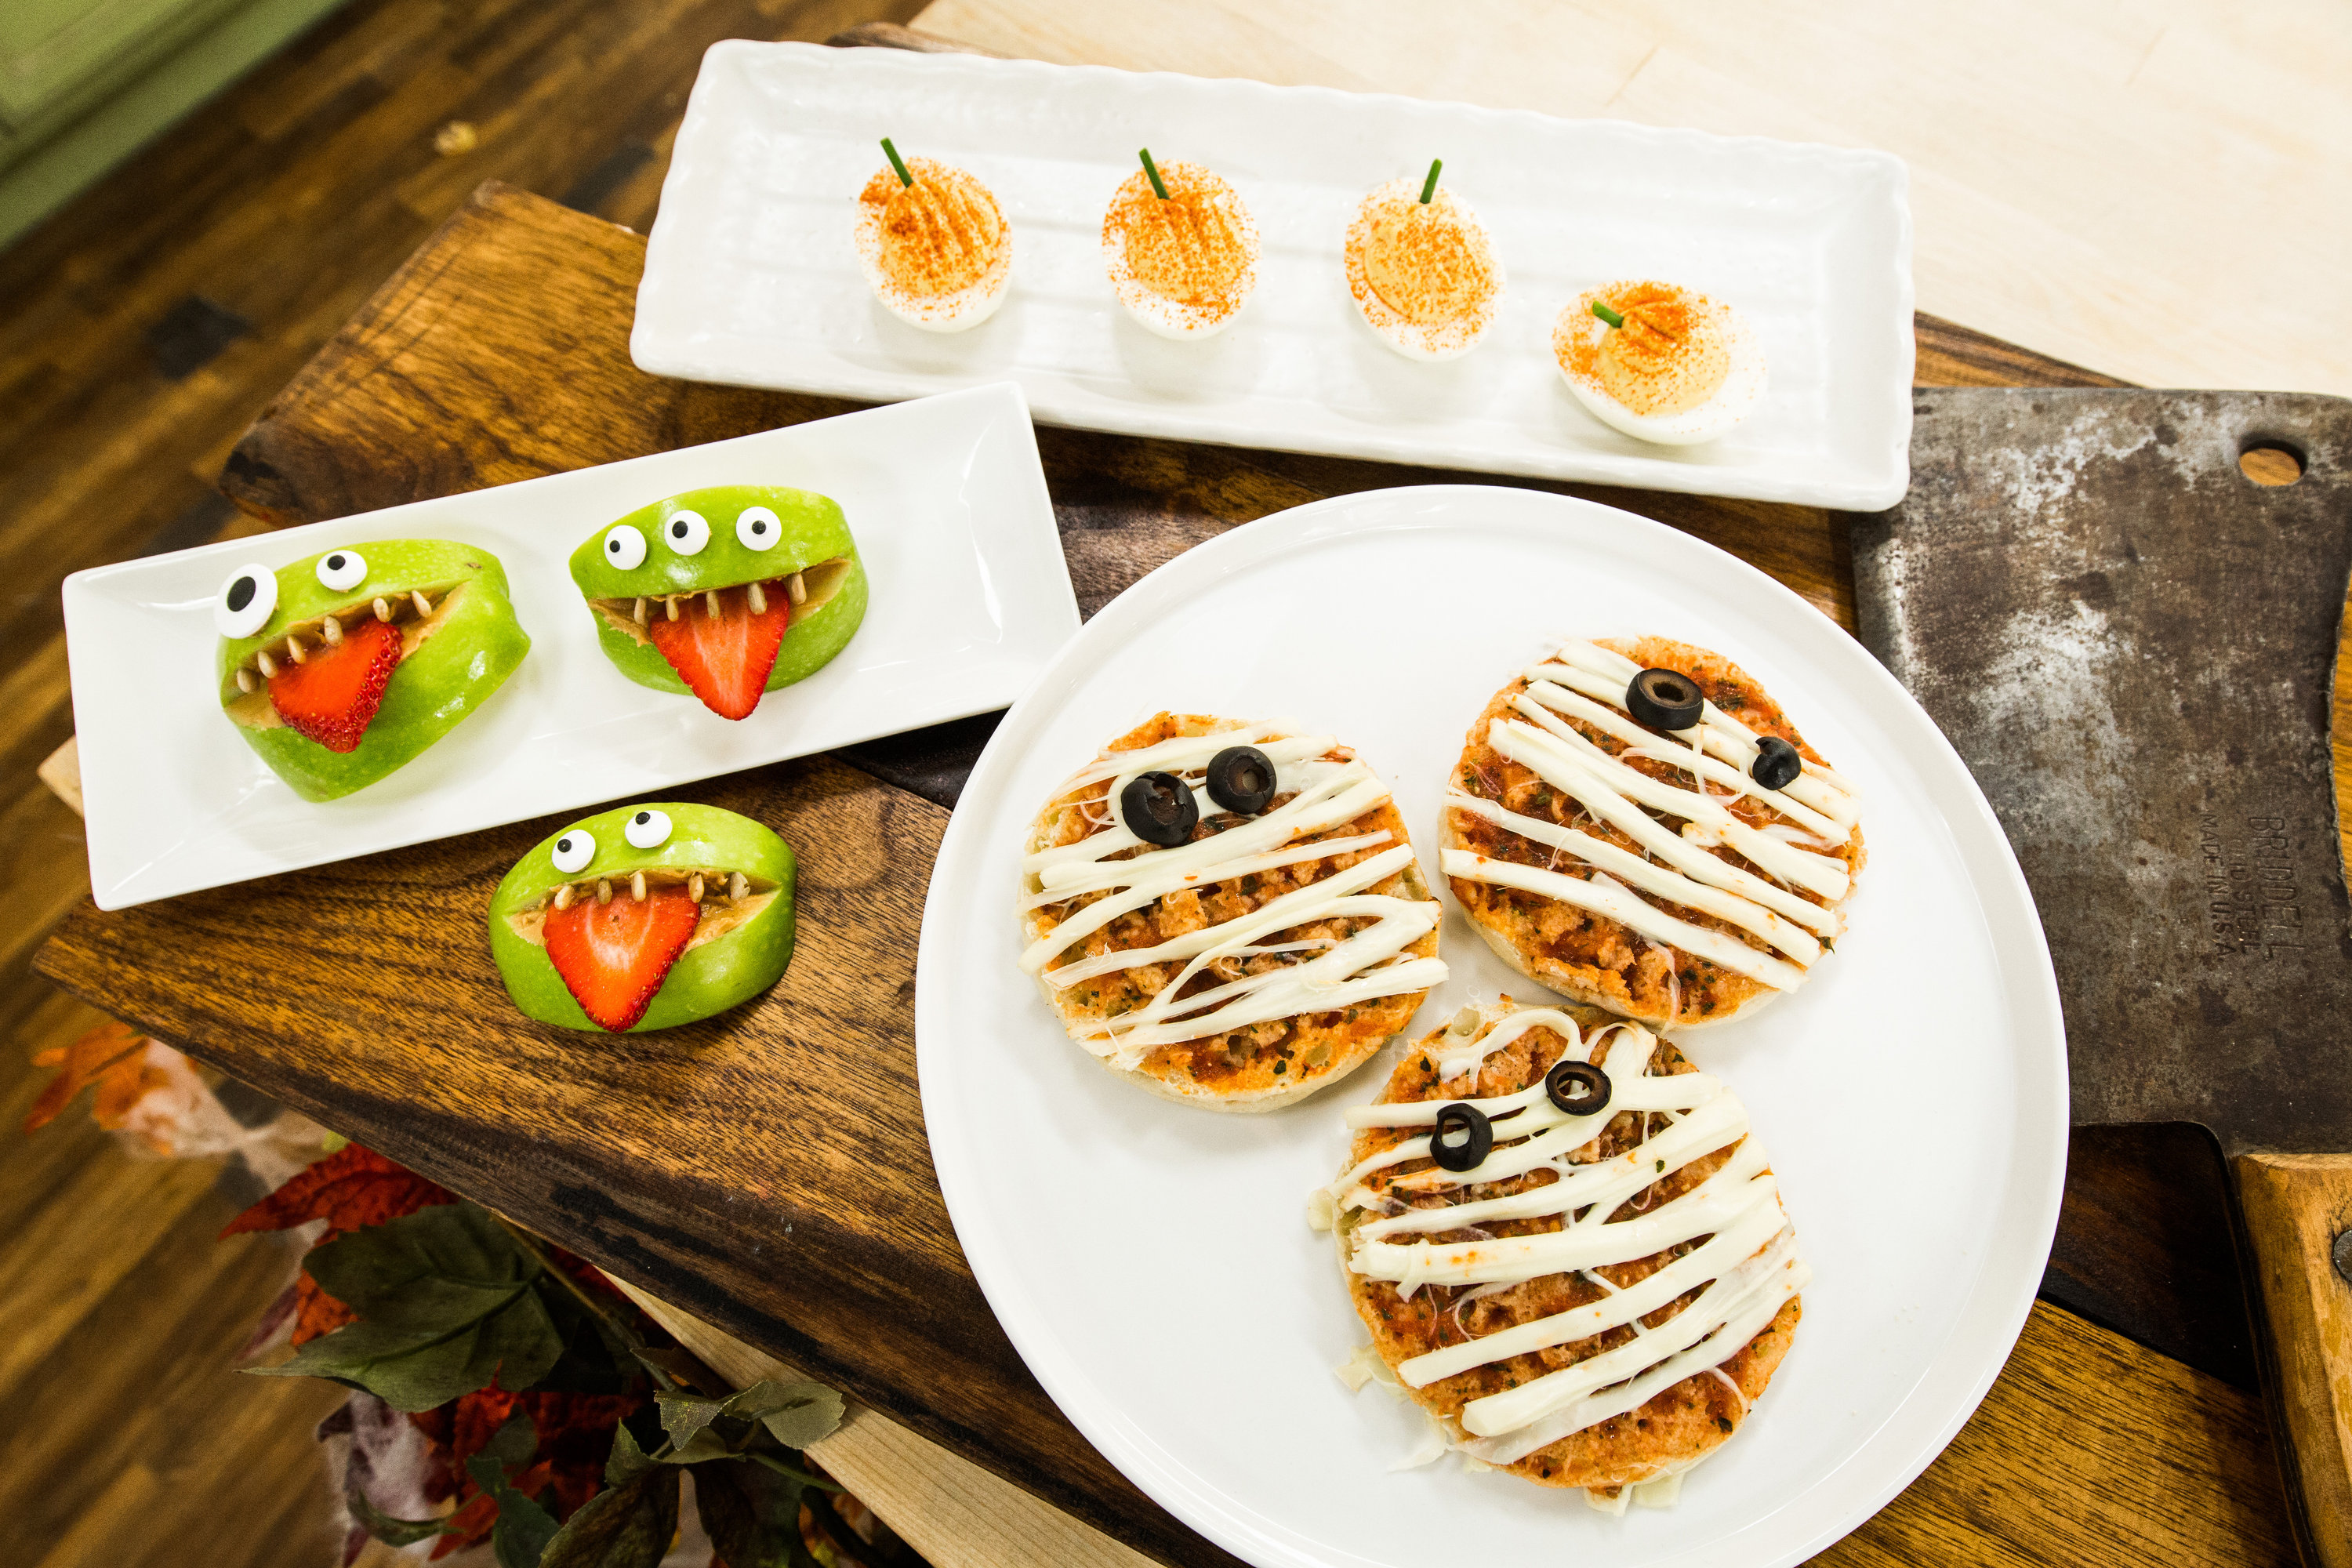 recipes - last-minute halloween appetizers | hallmark channel